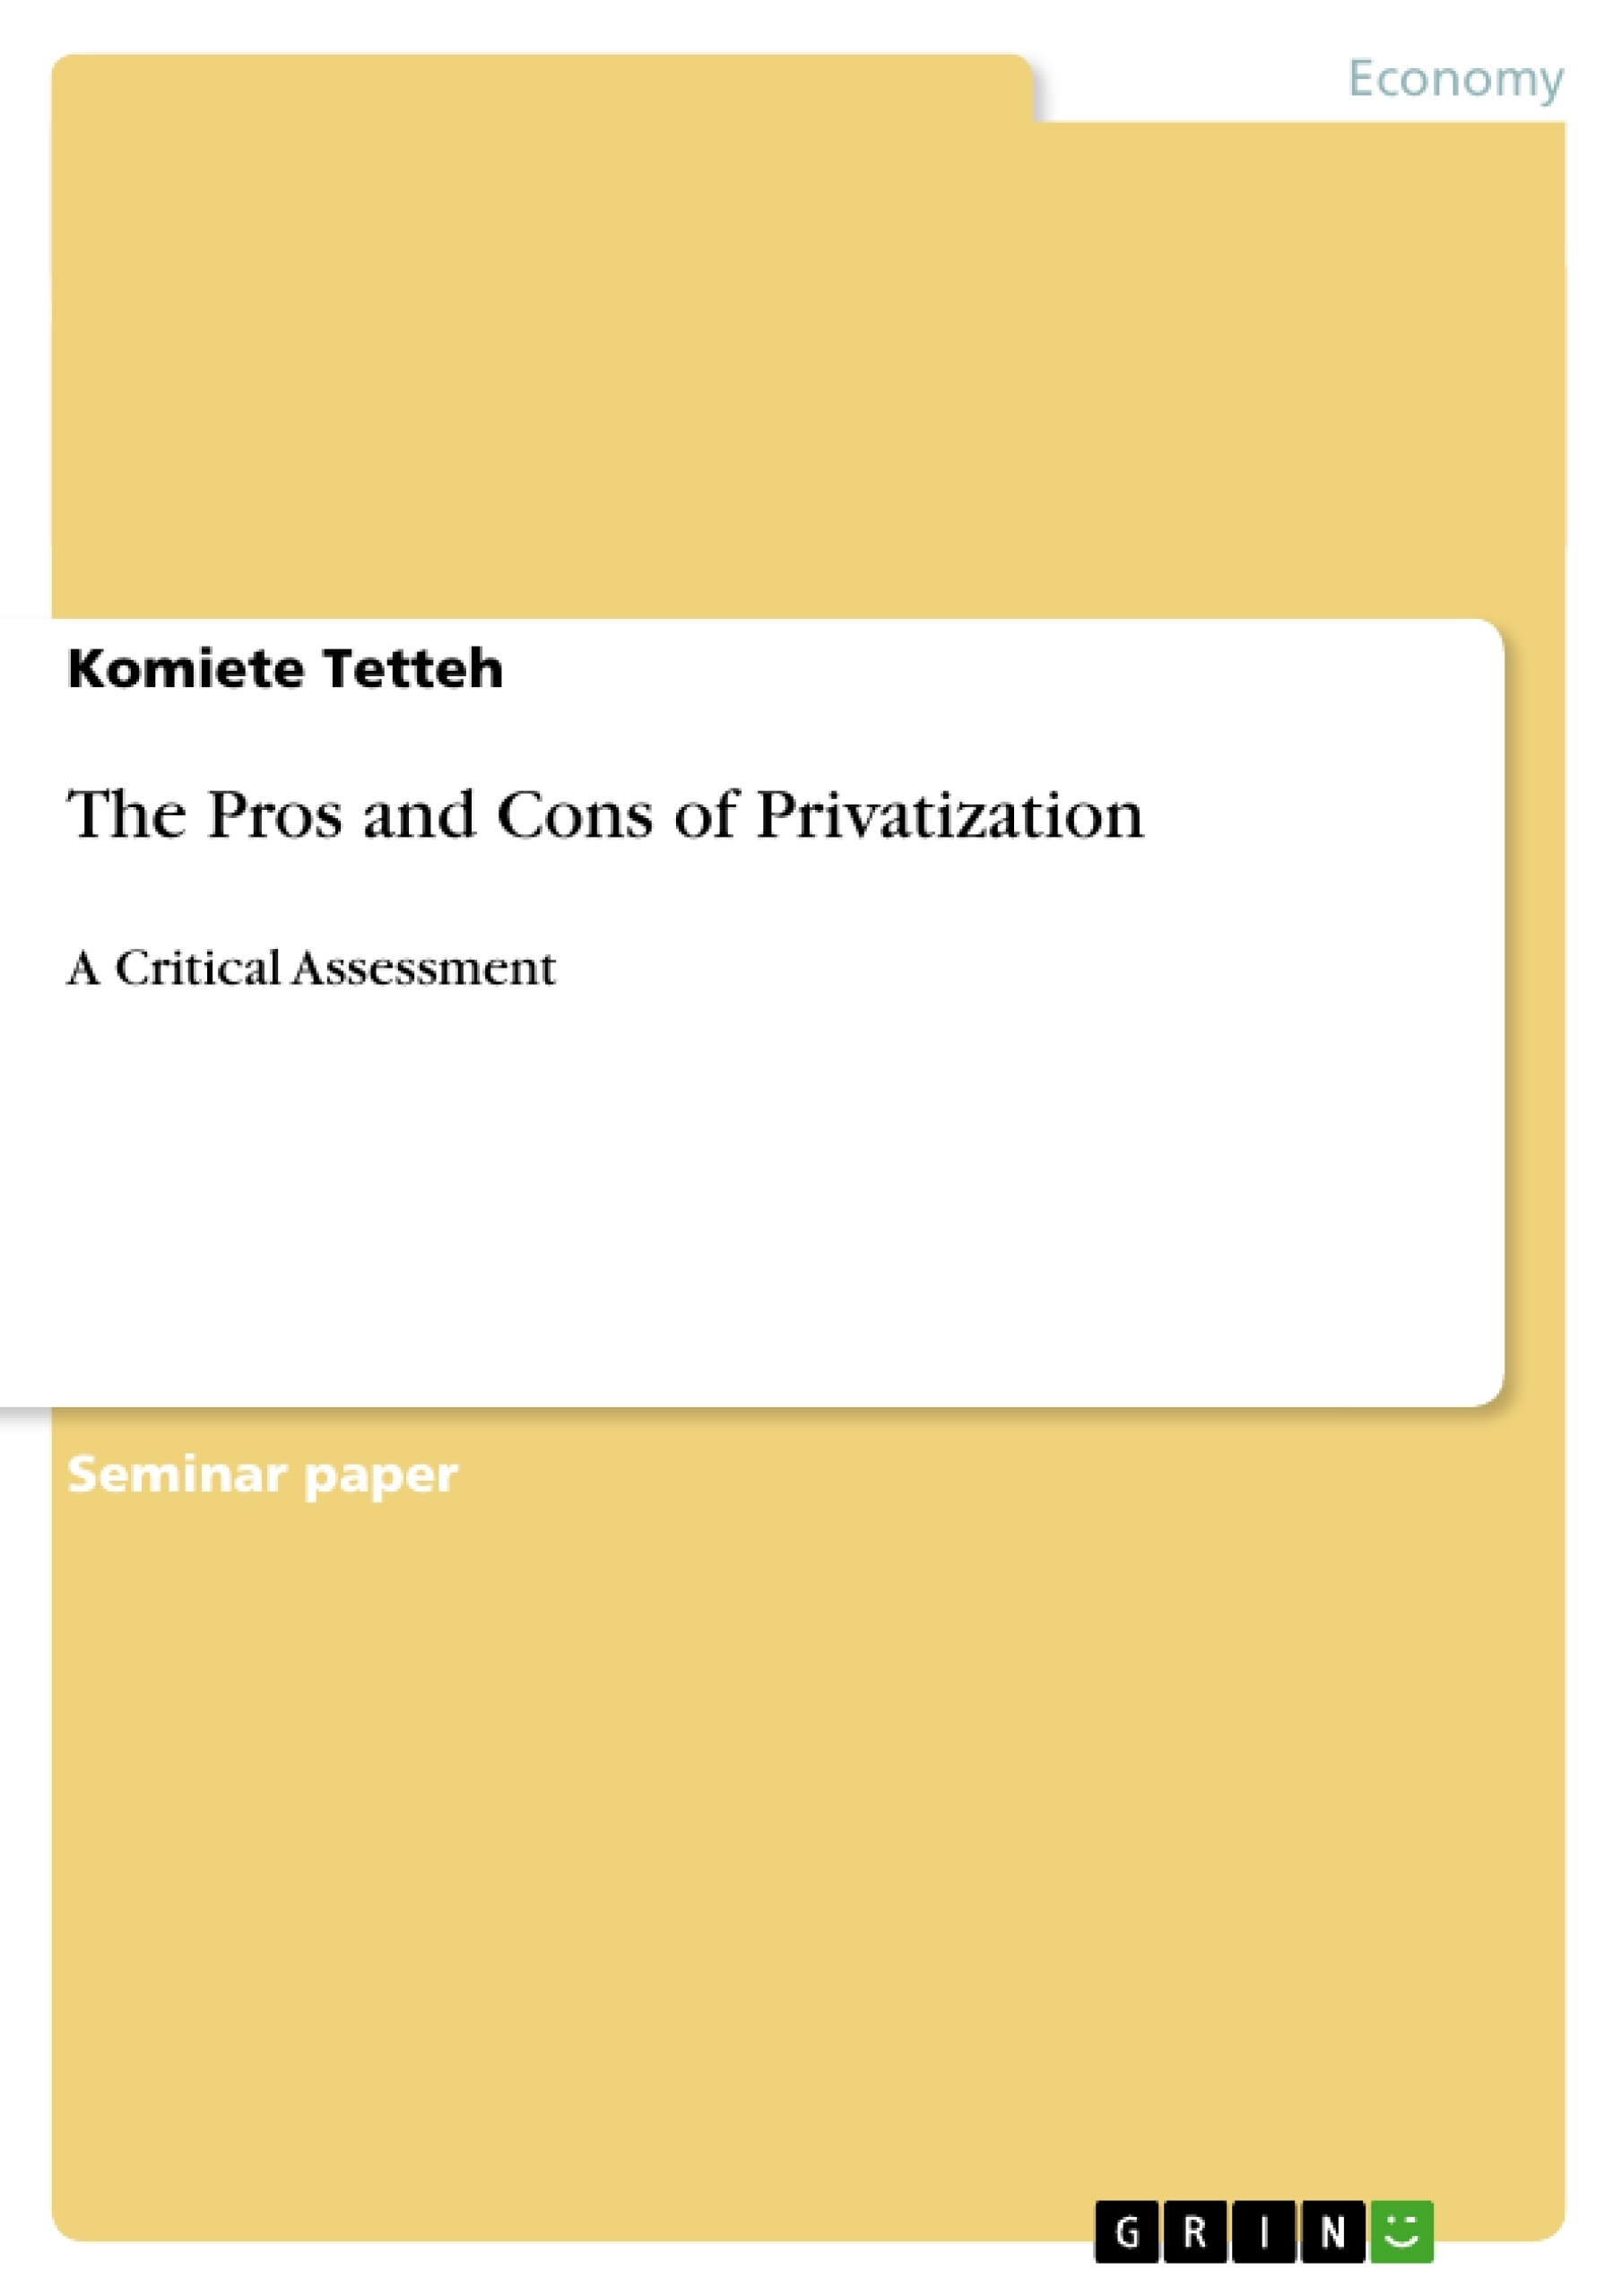 Title: The Pros and Cons of Privatization